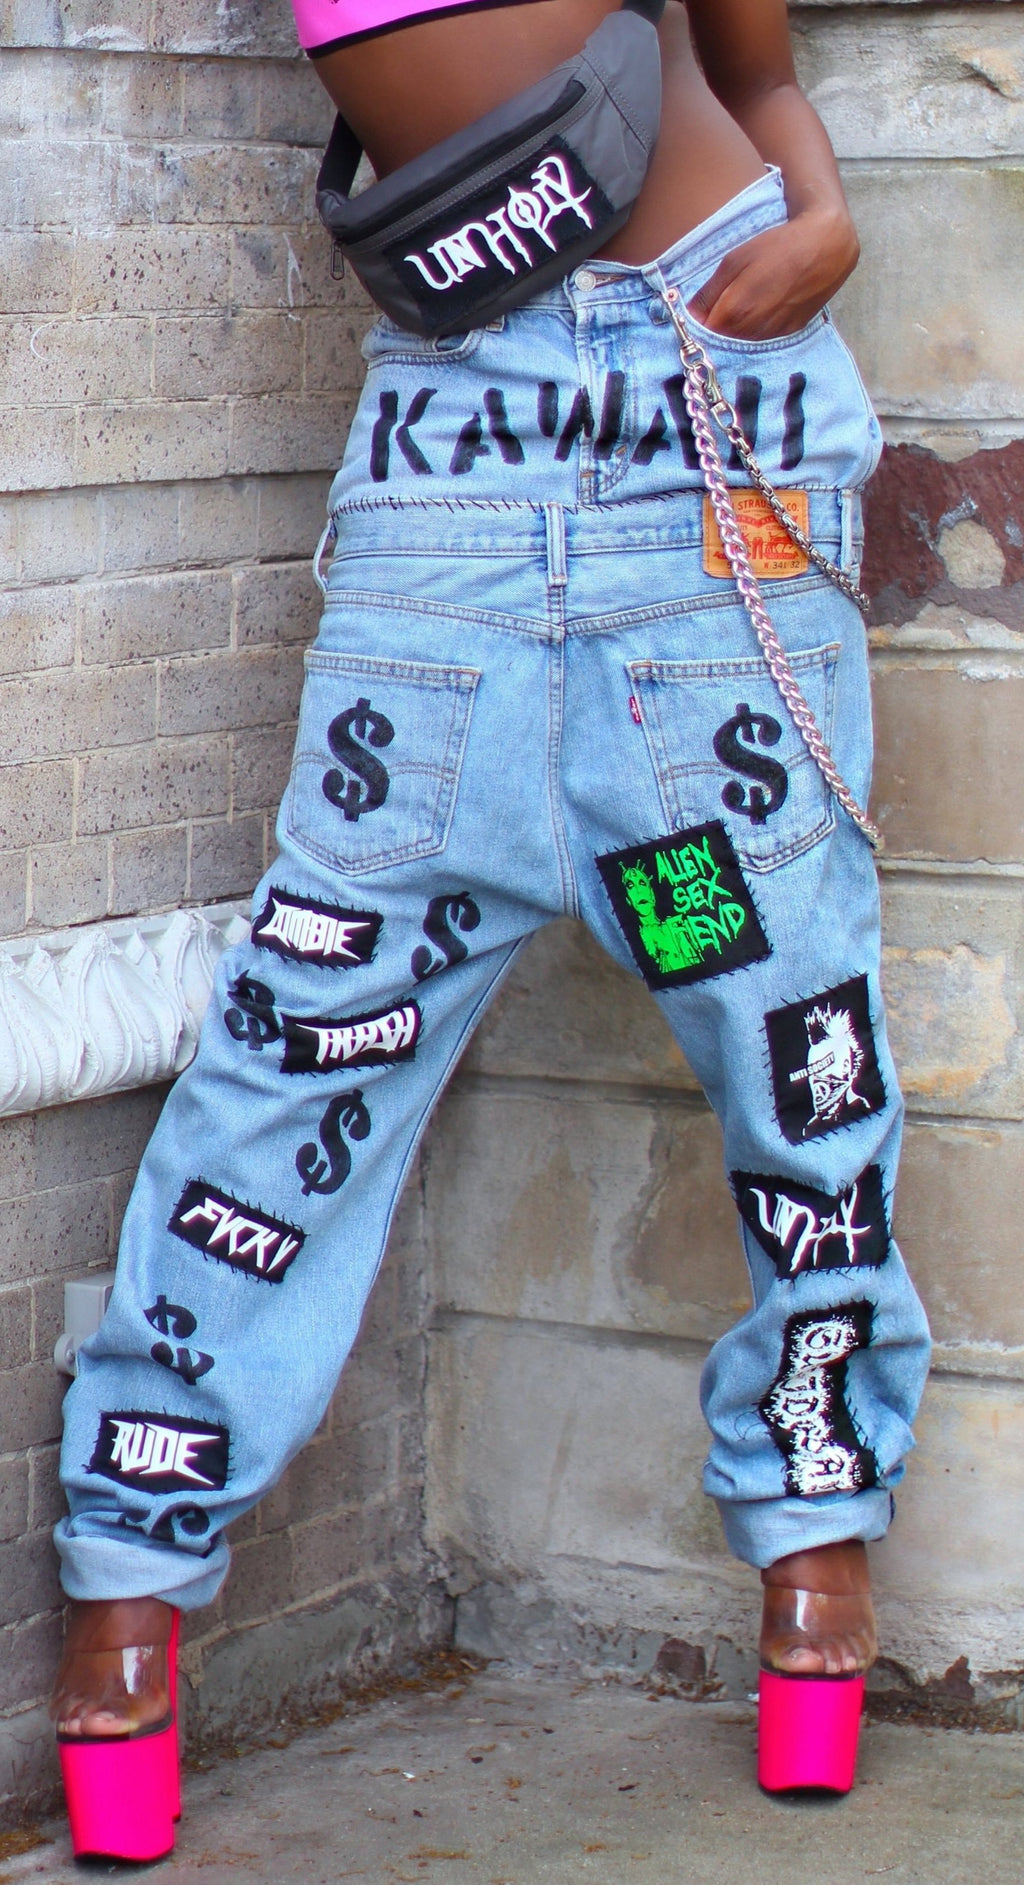 THE ' DESTROY $$' JEANS